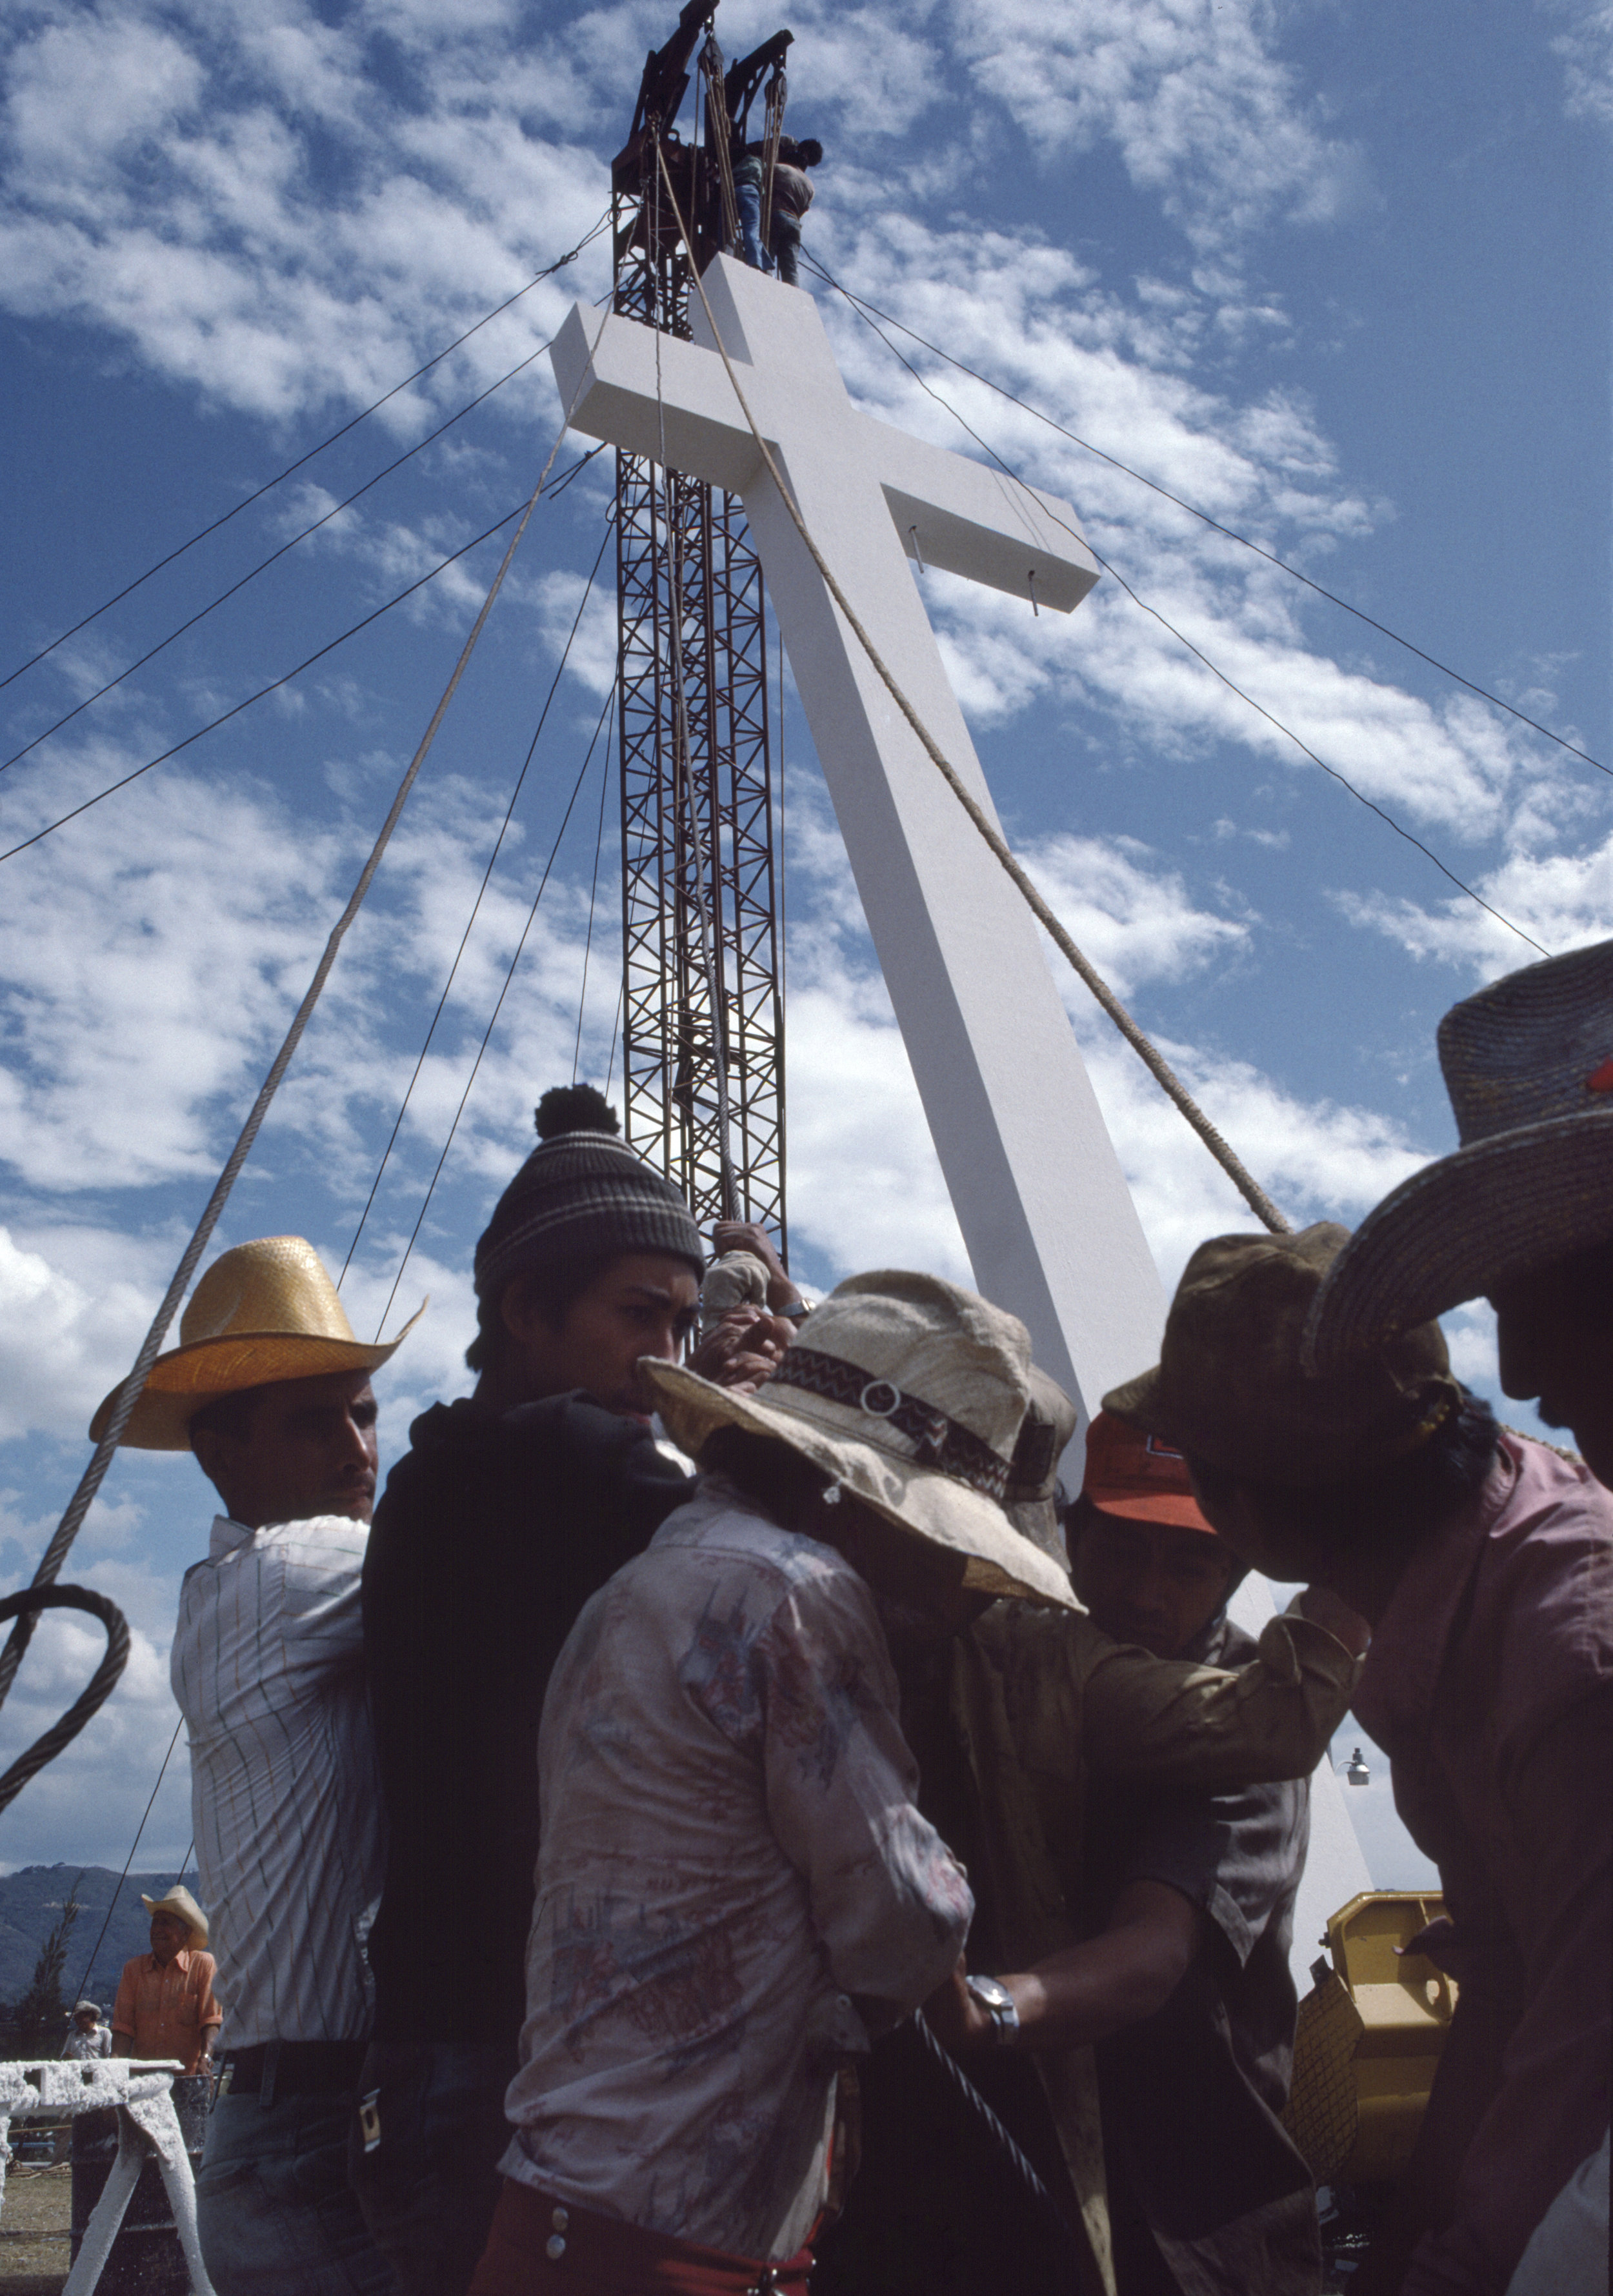 A cross is raised by a Guatemalan work crew during preparations for an open air mass by Pope John Paul ll in Guatemala City, Guatemala, February 26, 1983. Religion played a fundamental role in the civil war for both the guerrilla insurgency, who sympathized with the socially progressive Catholic movement of liberation theology, and the Guatemalan state, who used Fundamental Protestantism, and specifically the evangelical movement, as a means to stifle opposition to the military dictatorship and subvert the expansion of liberties and individual responsibility promoted through liberation theology.